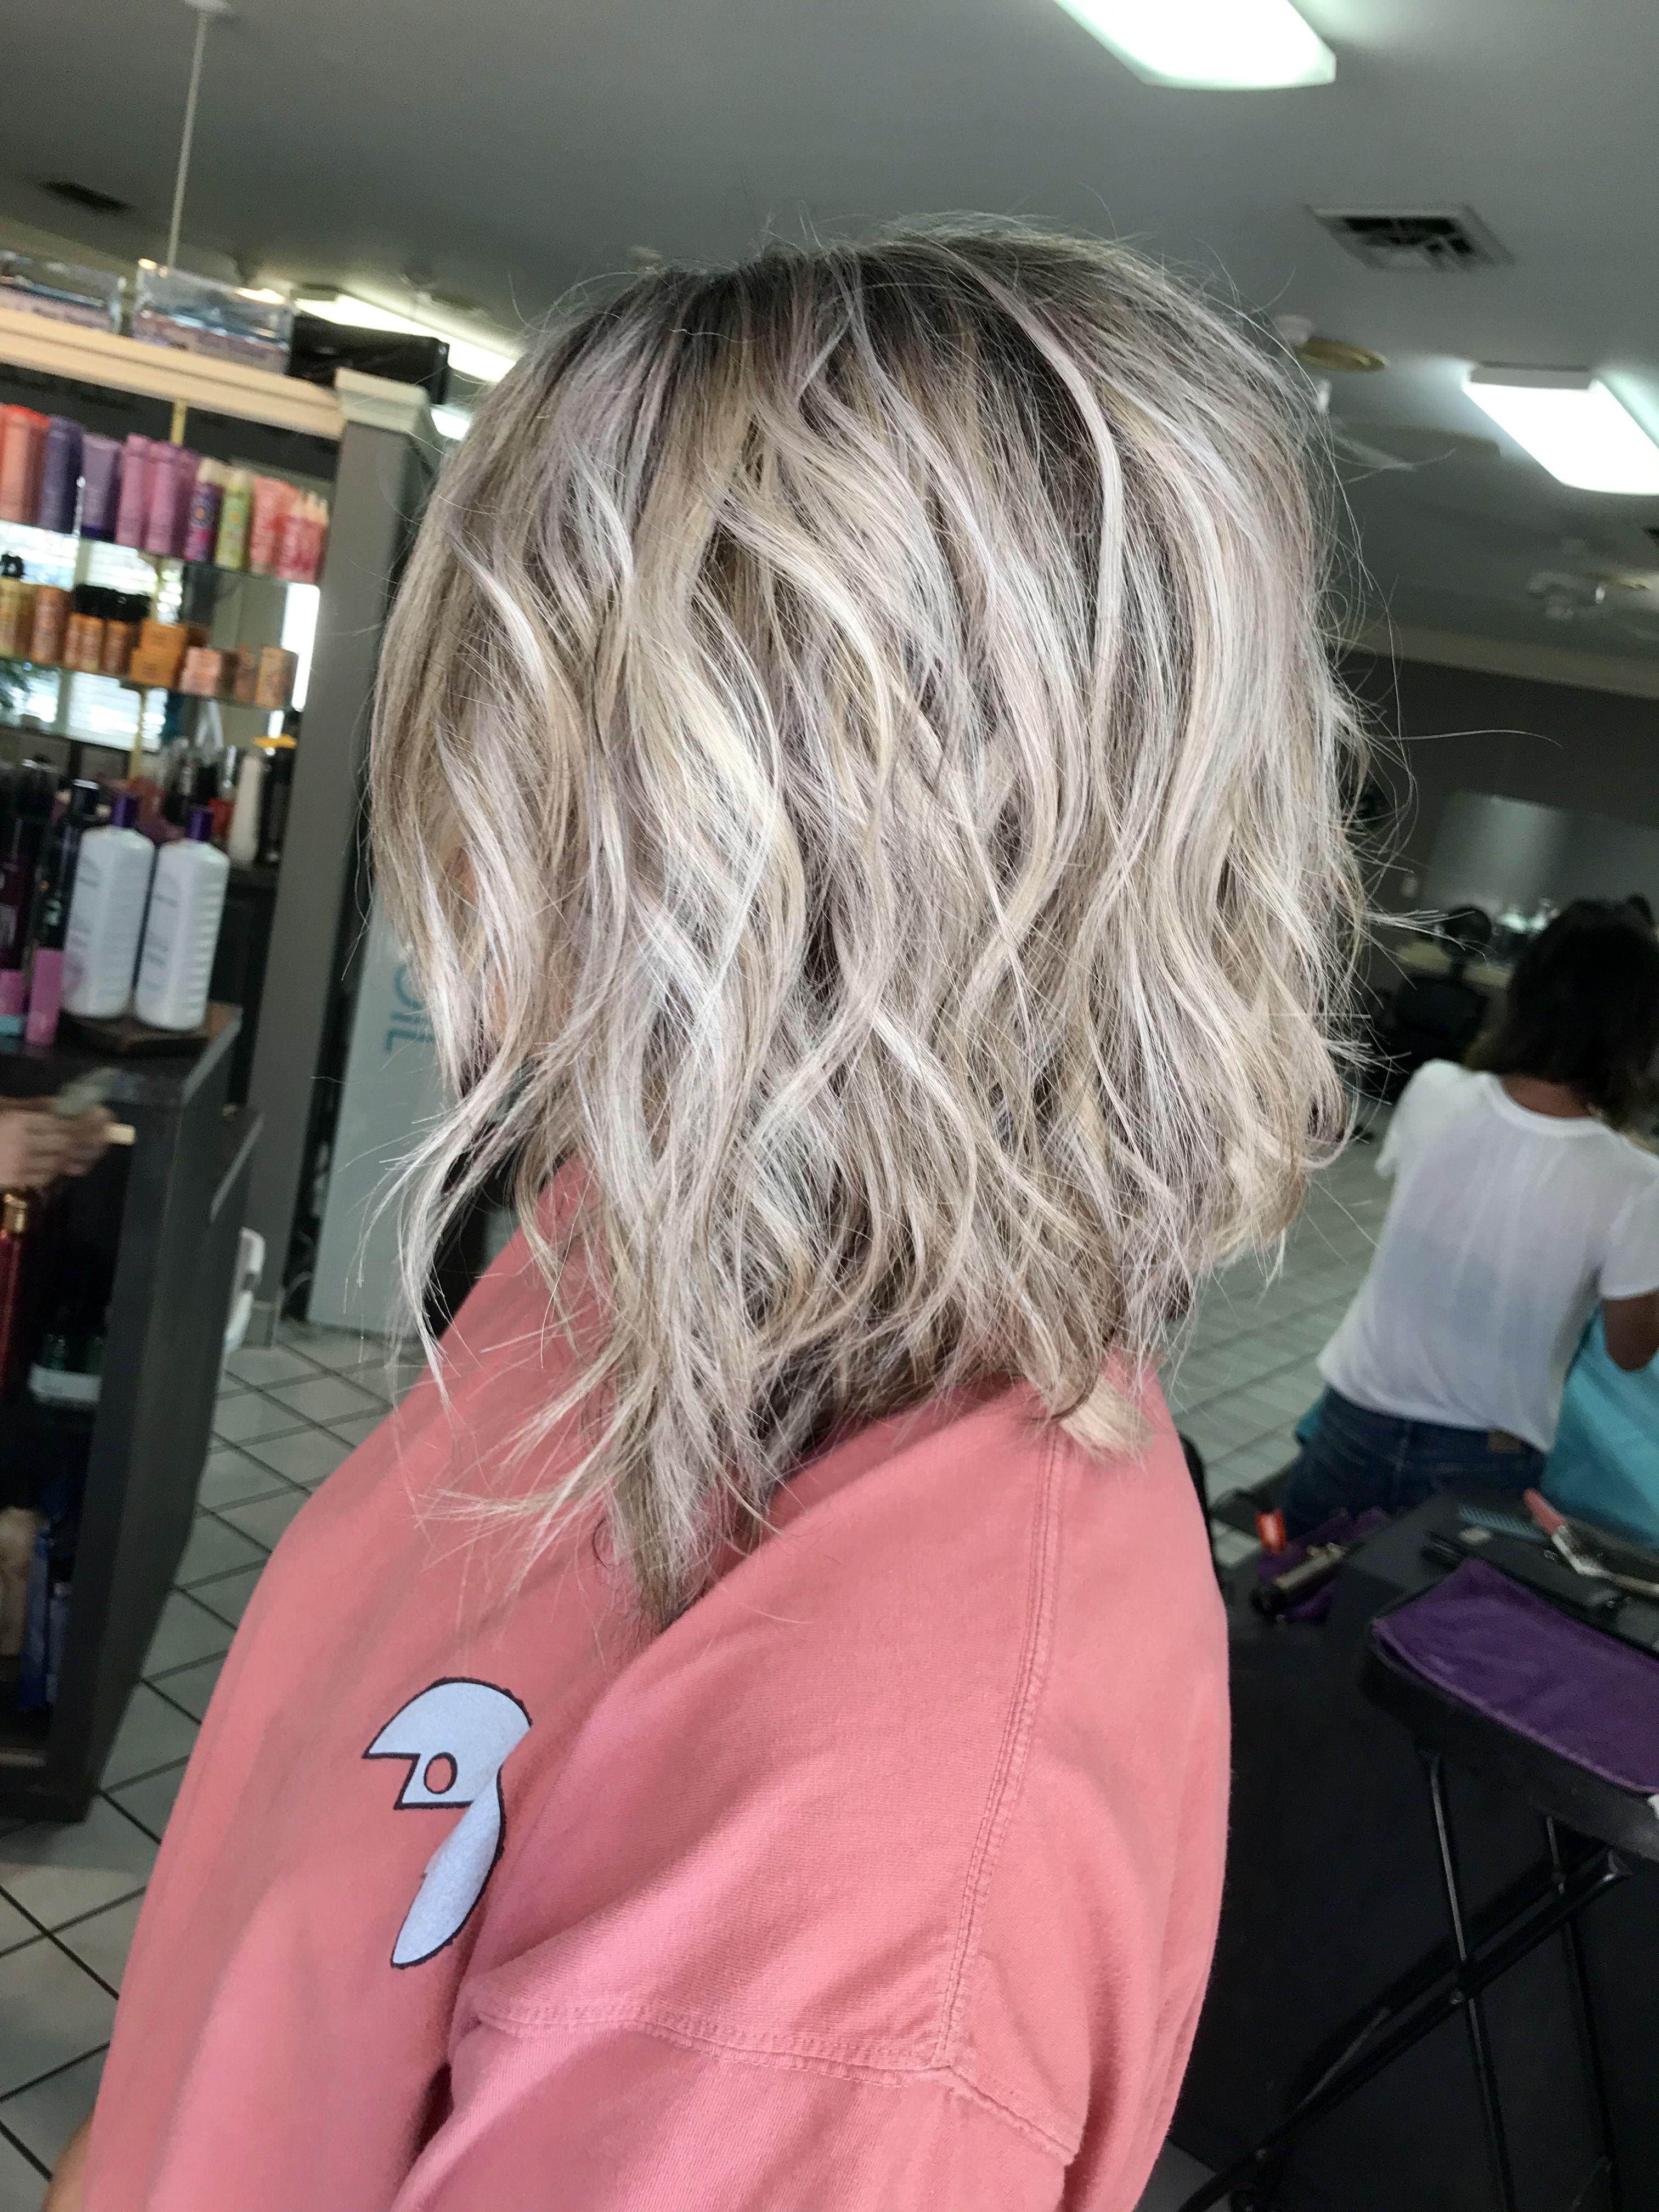 Hair Goals Heavy Blonde Highlights With Dark Brown Shadow Root Heavy Blonde Highlights Blonde Highlights On Dark Hair Brown Hair With Blonde Highlights